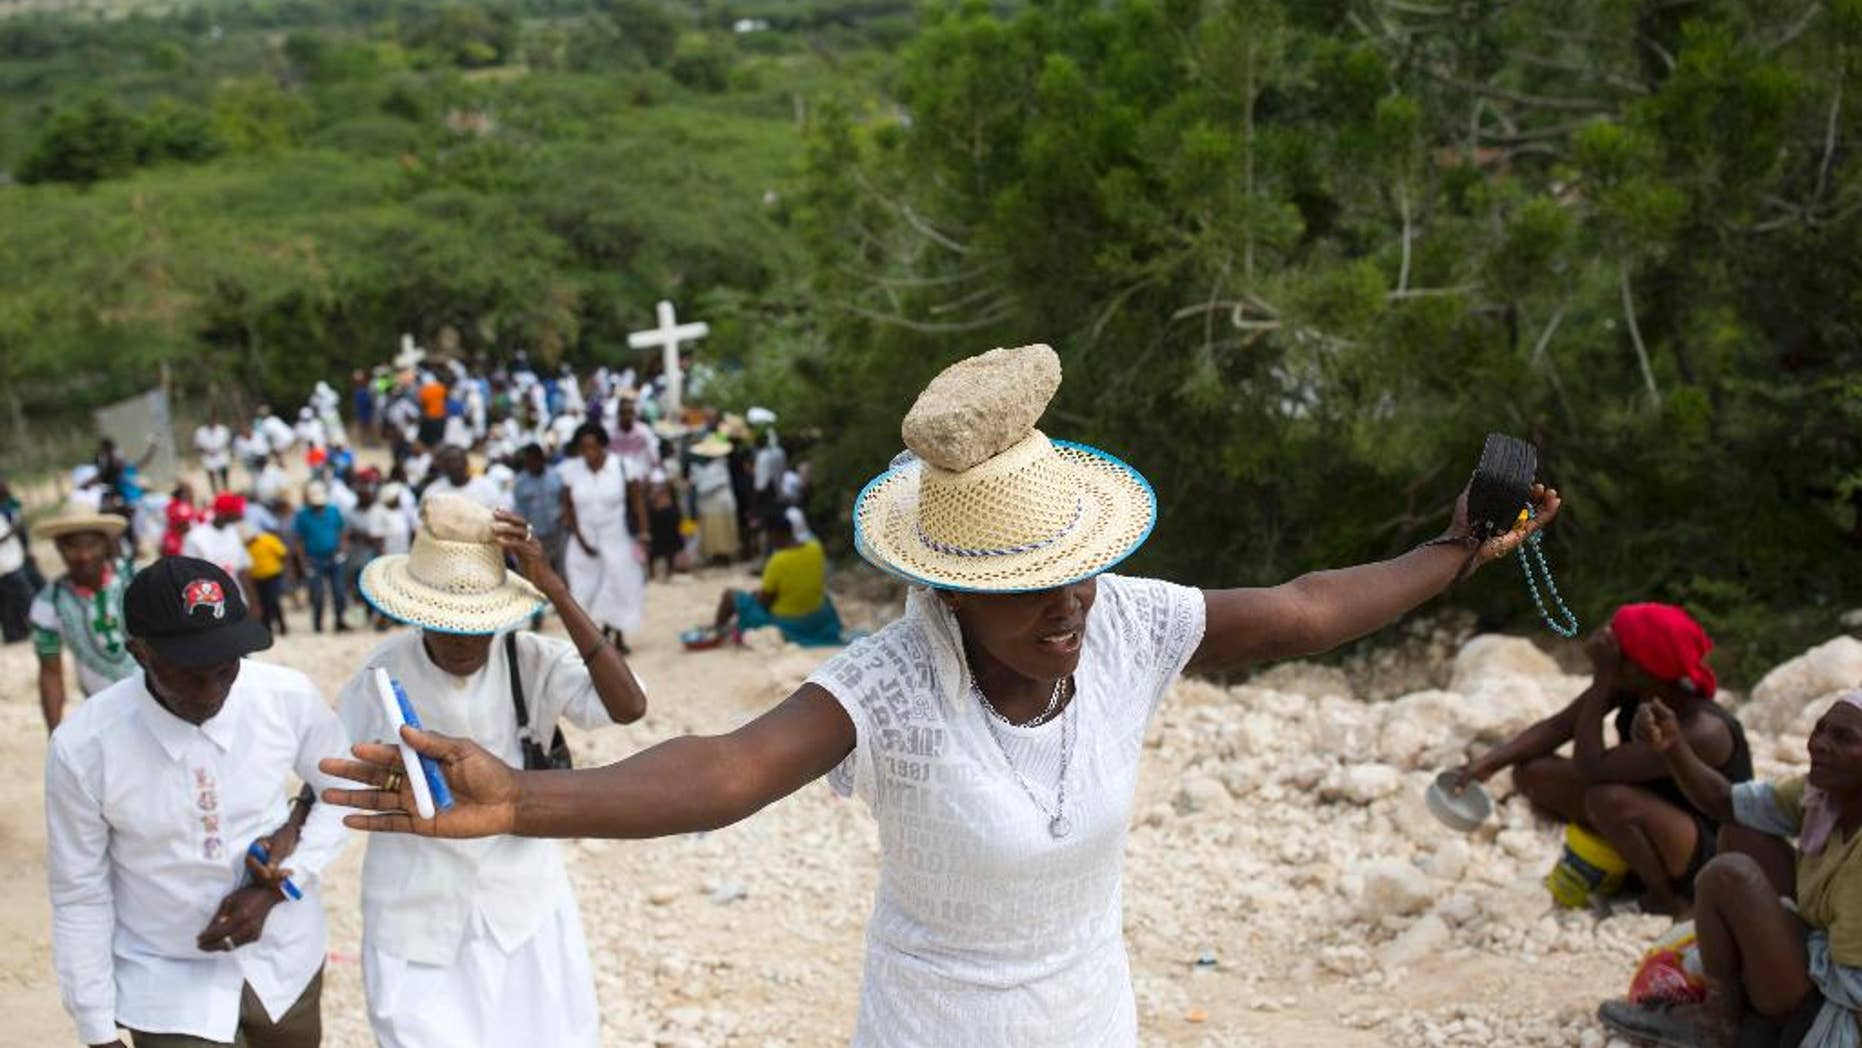 Haiti struck by deadly natural disaster